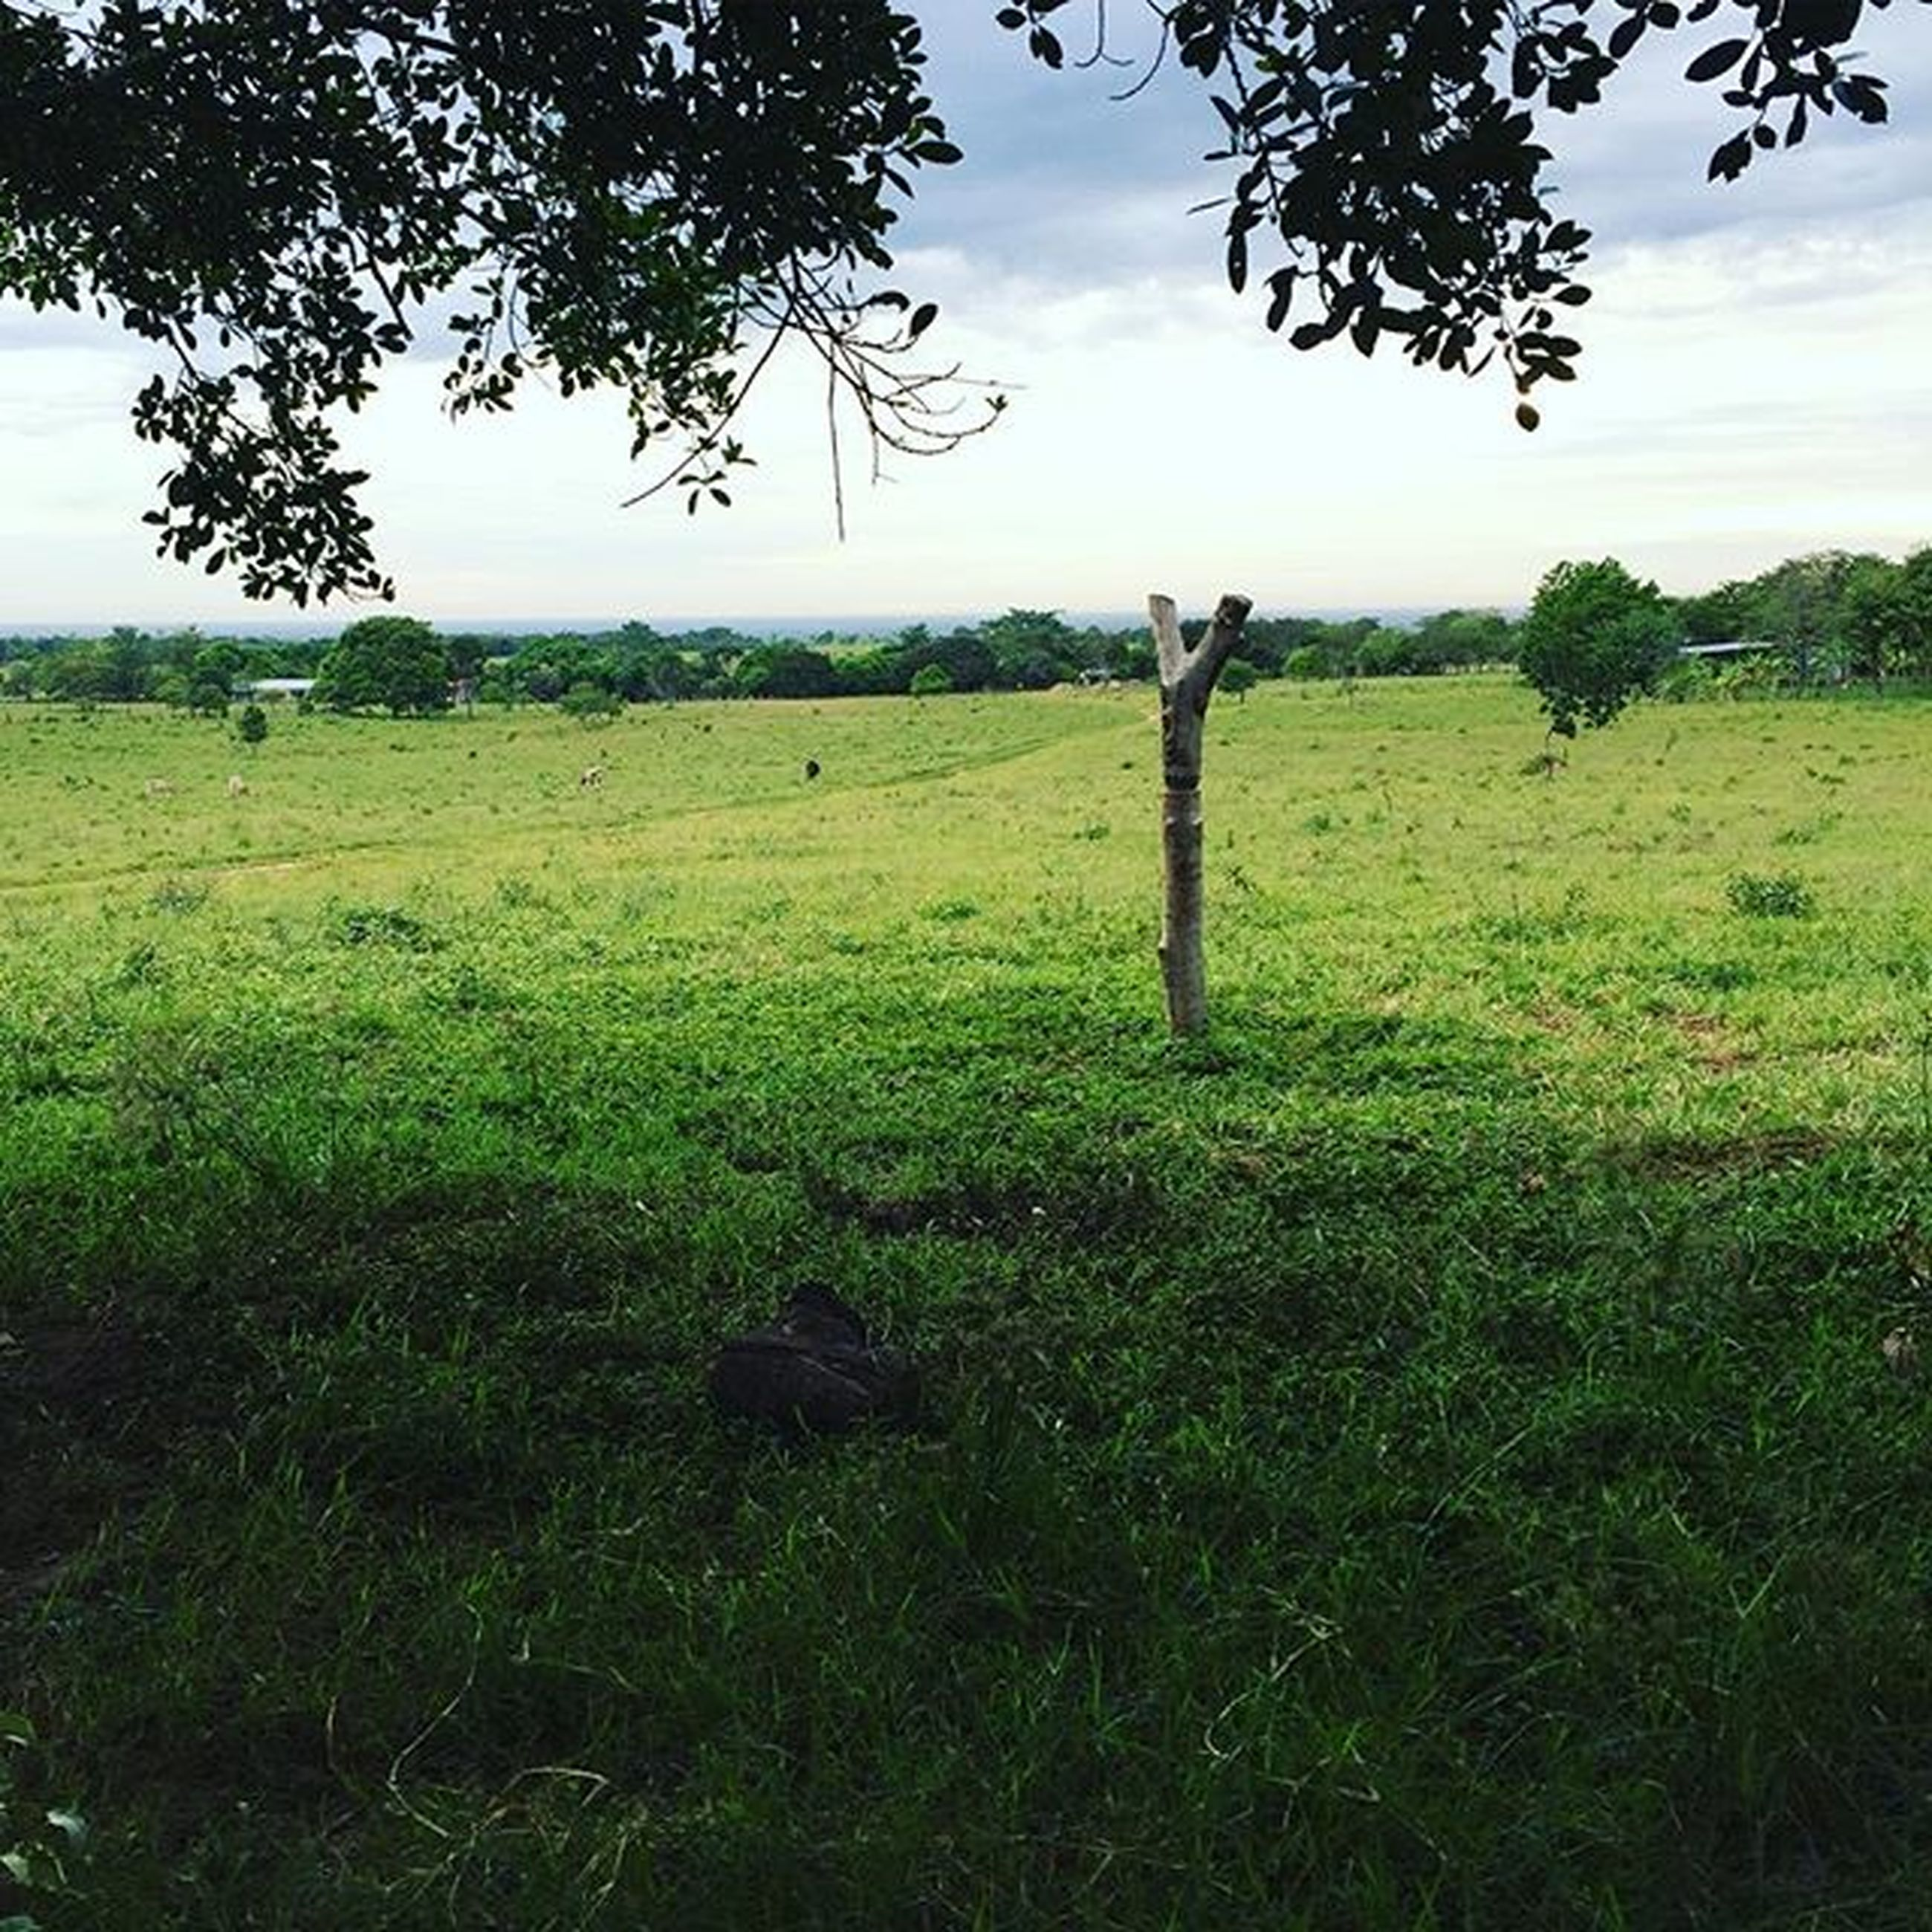 grass, field, grassy, tranquility, landscape, tranquil scene, green color, tree, sky, nature, growth, scenics, beauty in nature, fence, meadow, day, non-urban scene, idyllic, rural scene, outdoors